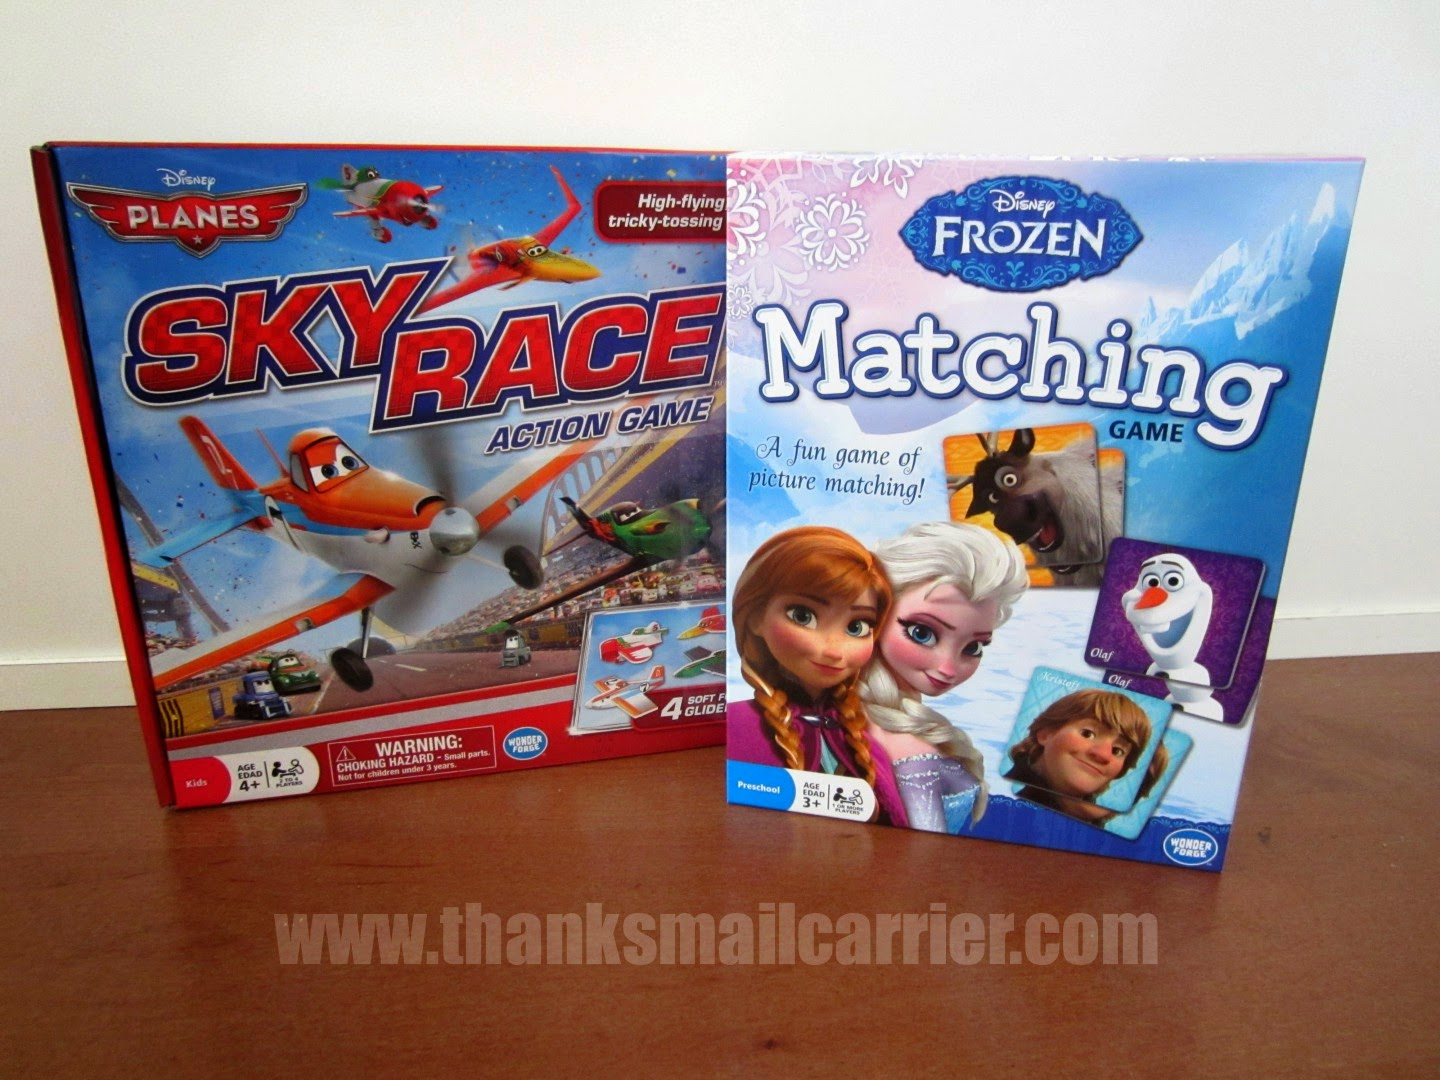 Disney Frozen Planes games